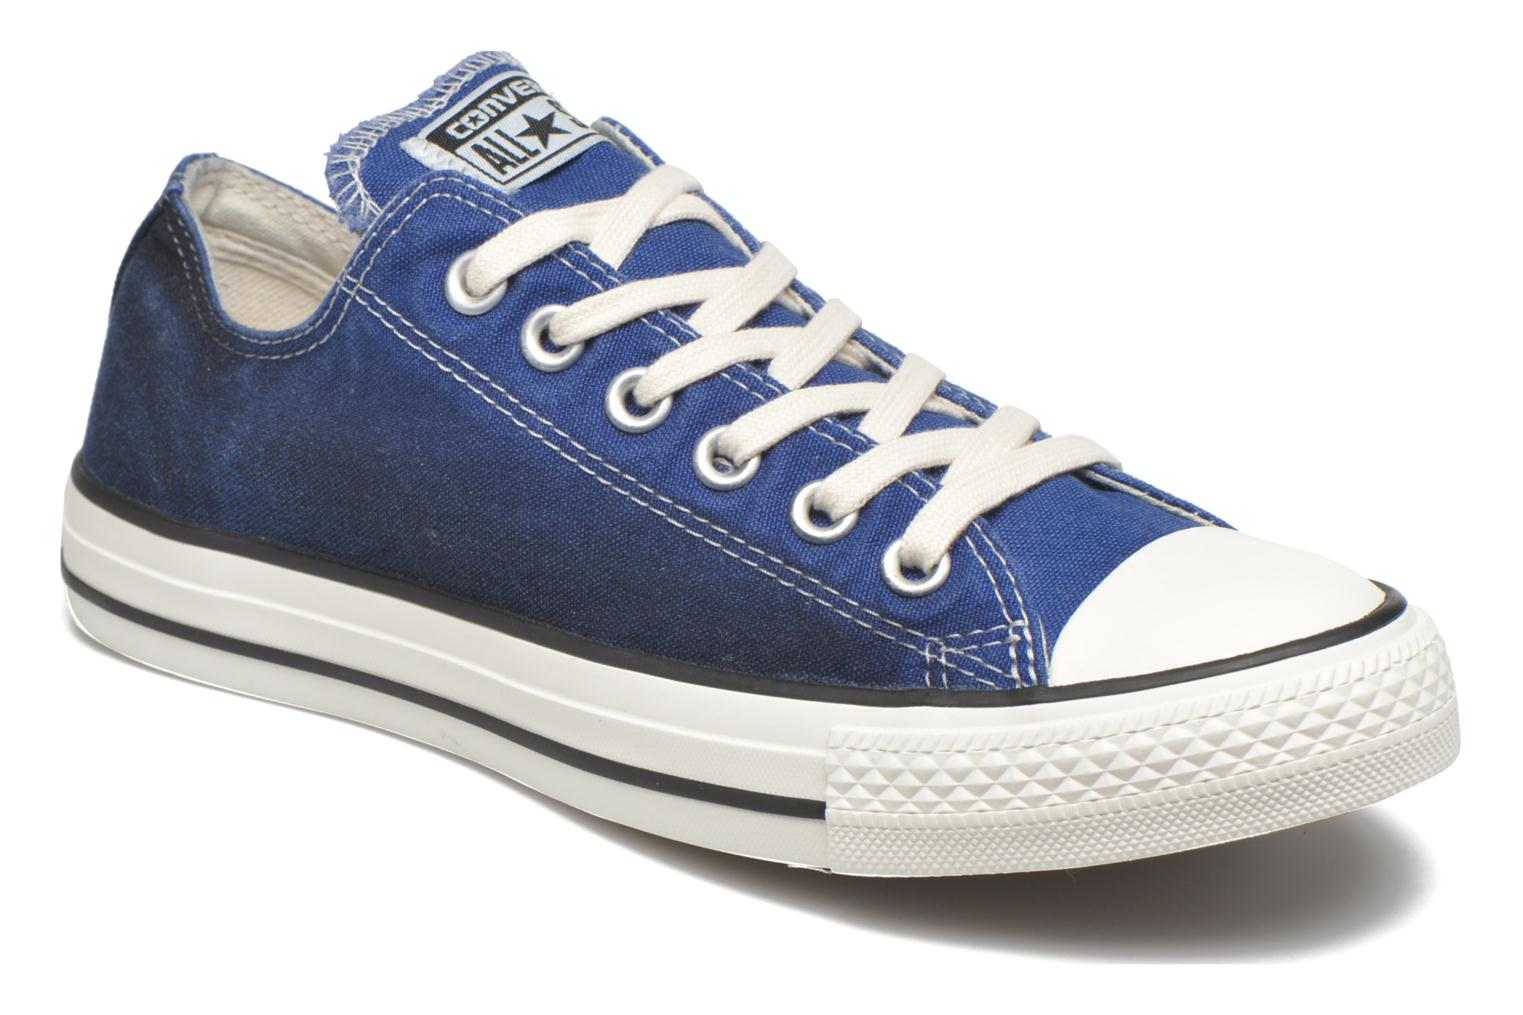 69de84cb3a Converse Chuck Taylor All Star Ox Sunset Wash W (Blue) - Trainers ...